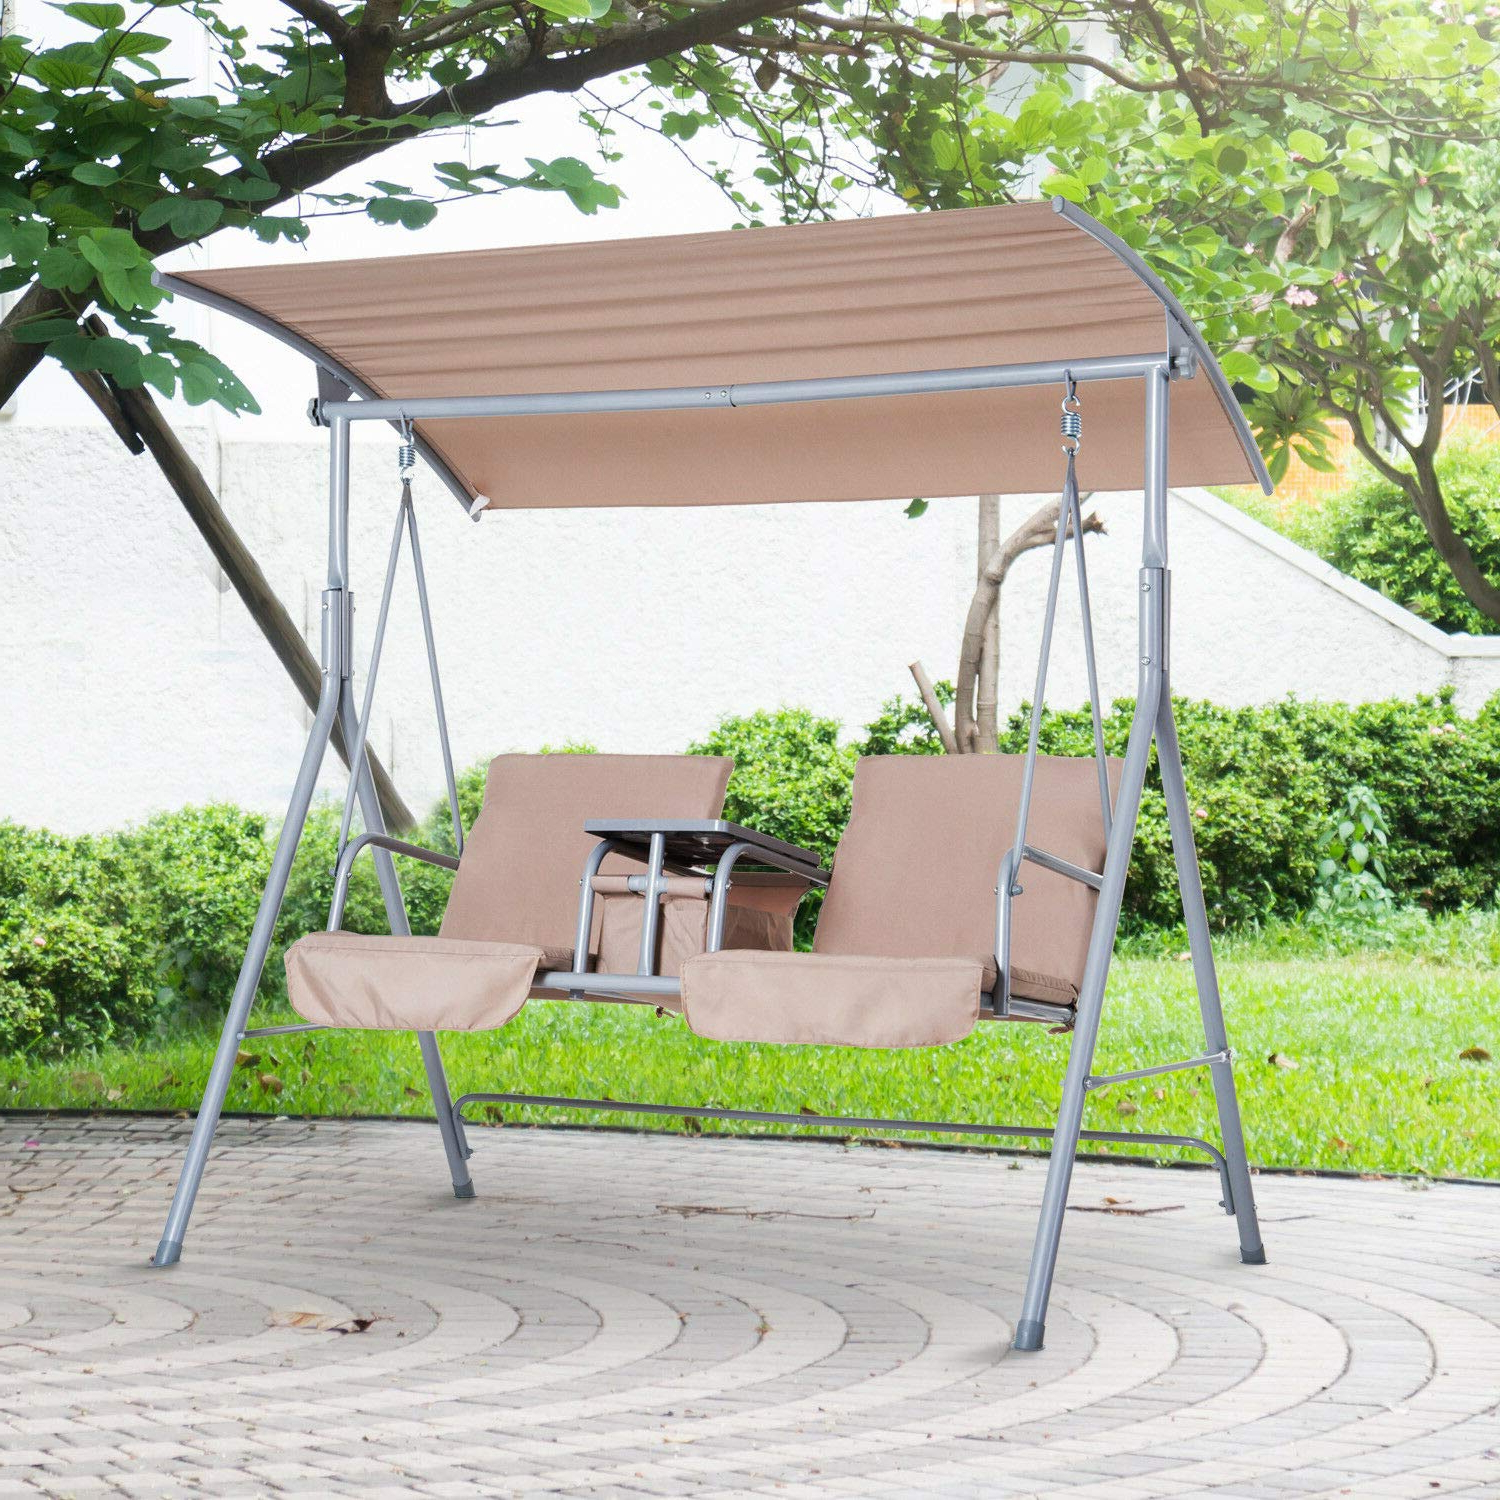 Best And Newest Pergola Porch Swings With Stand Inside Amazon : Mb Campstar 2 Person Outdoor Patio Porch Swing (Gallery 20 of 30)